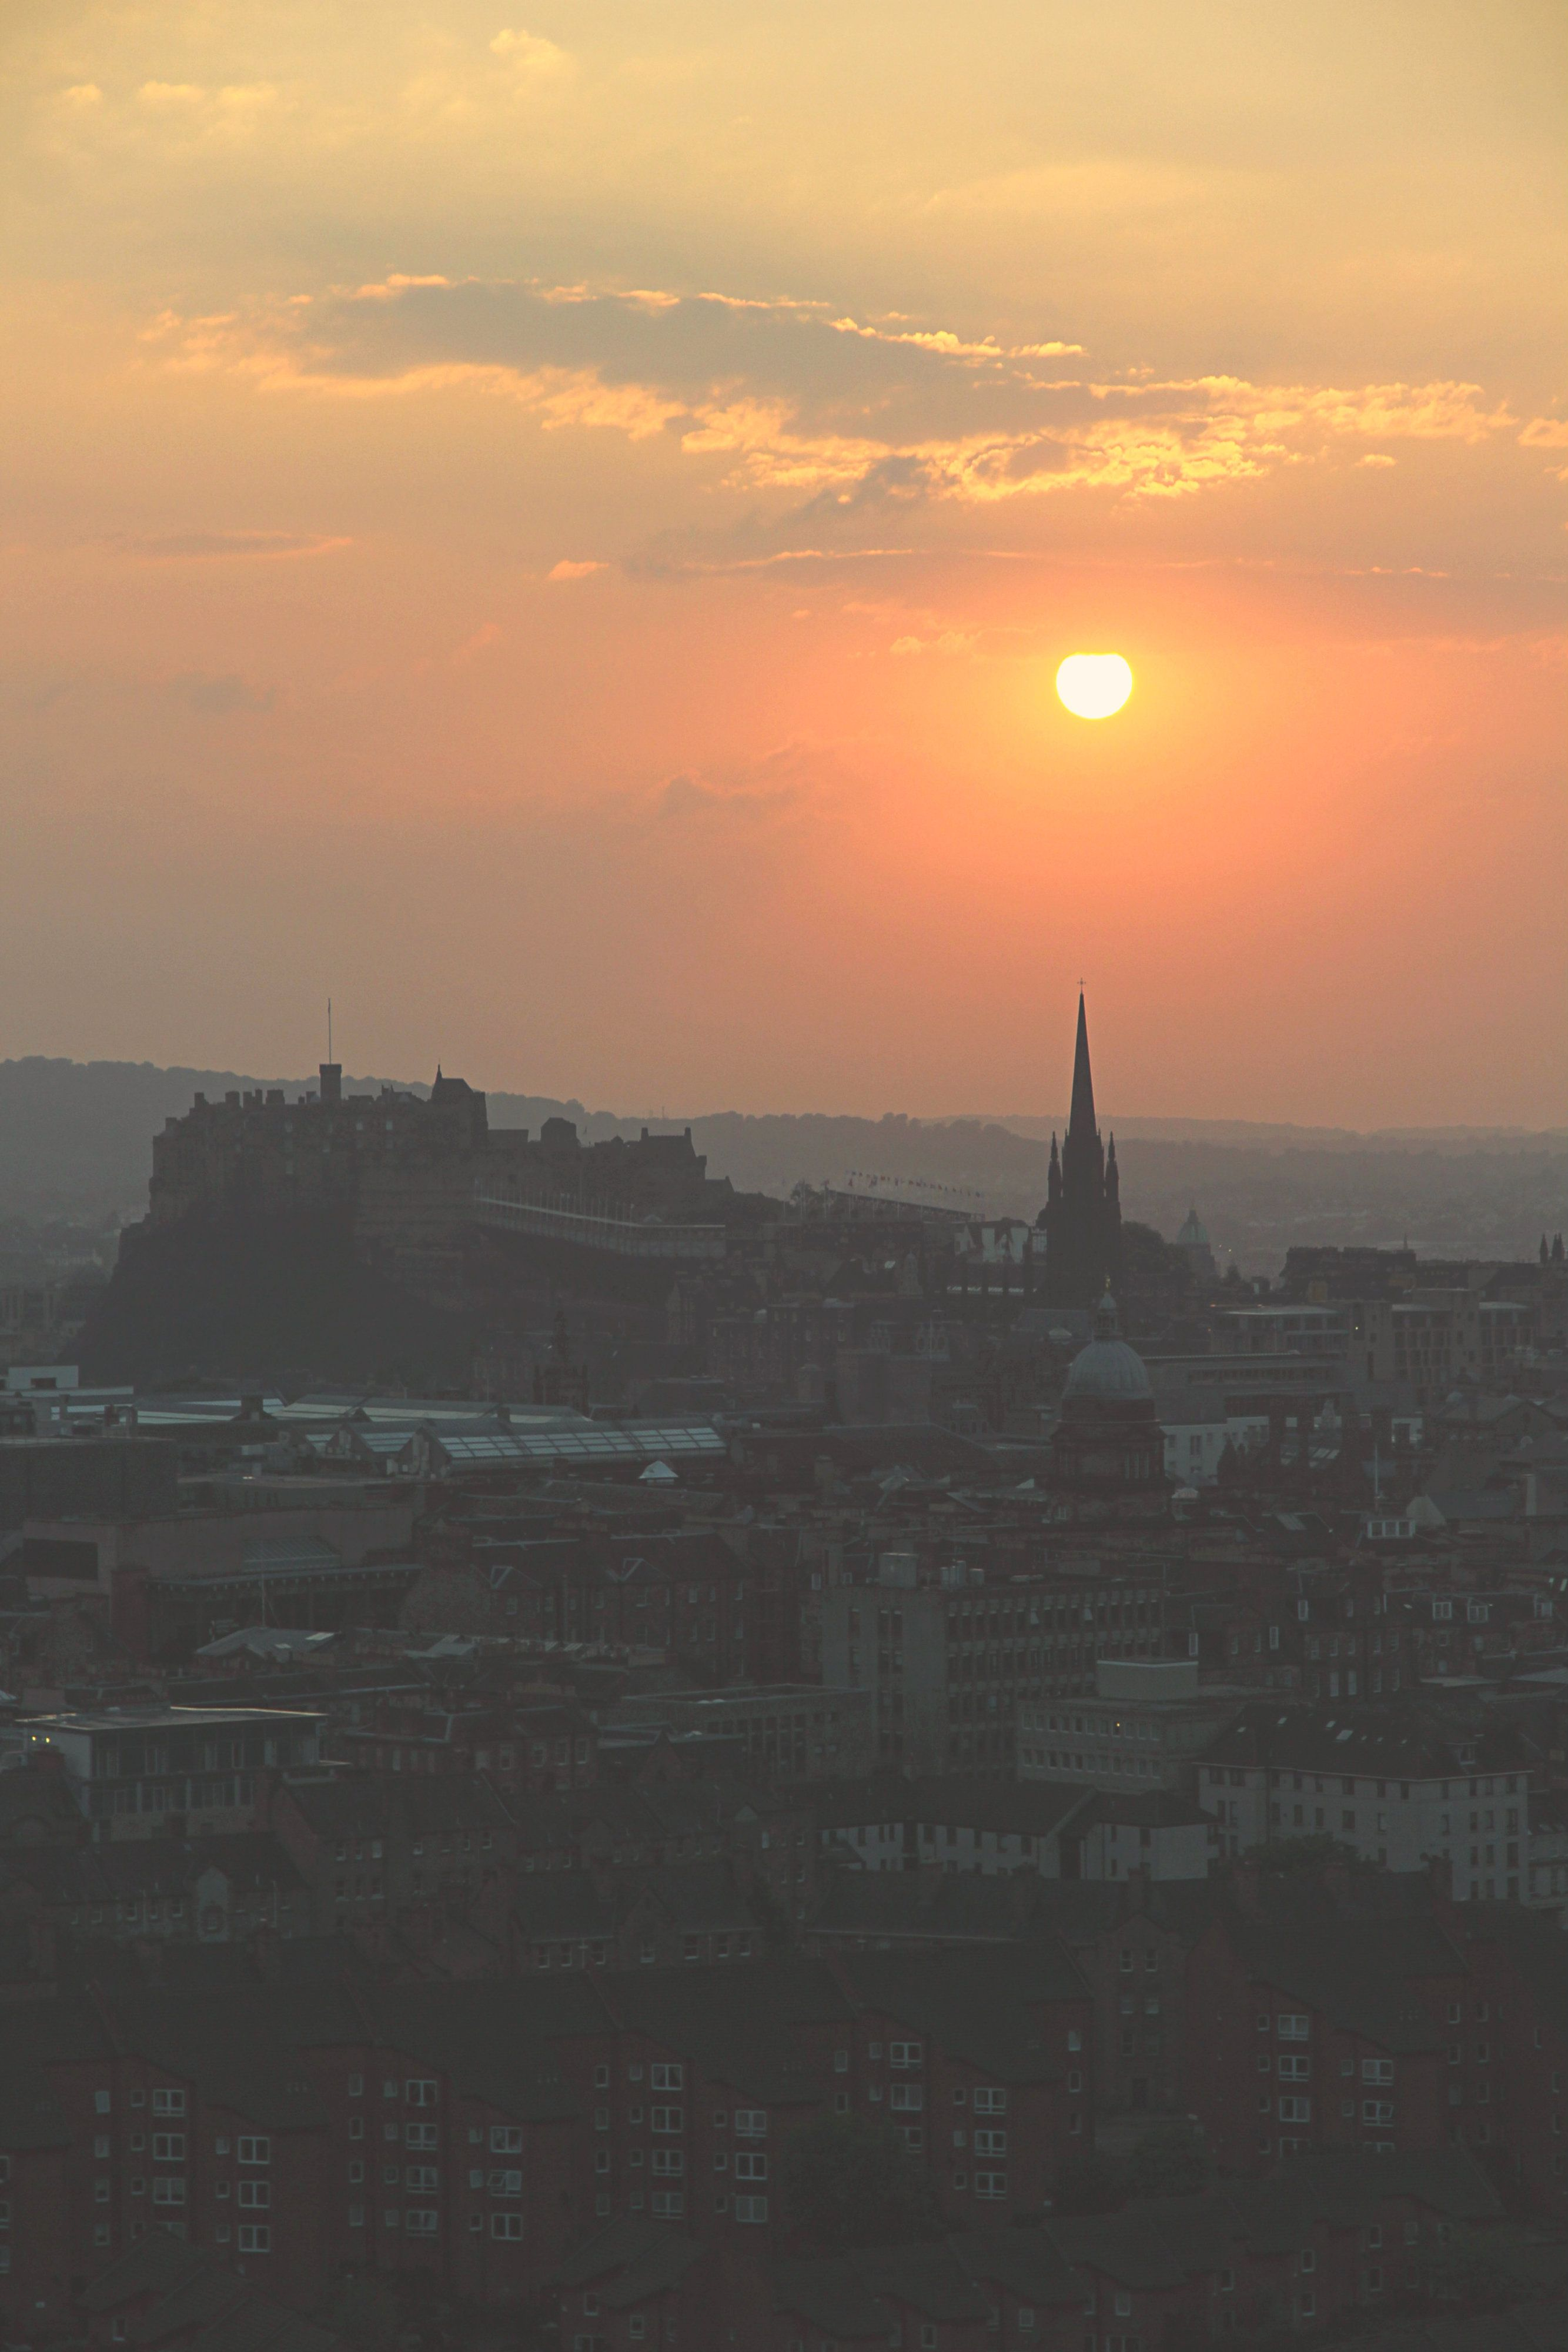 A DAY IN EDINBURGH: THINGS TO DO